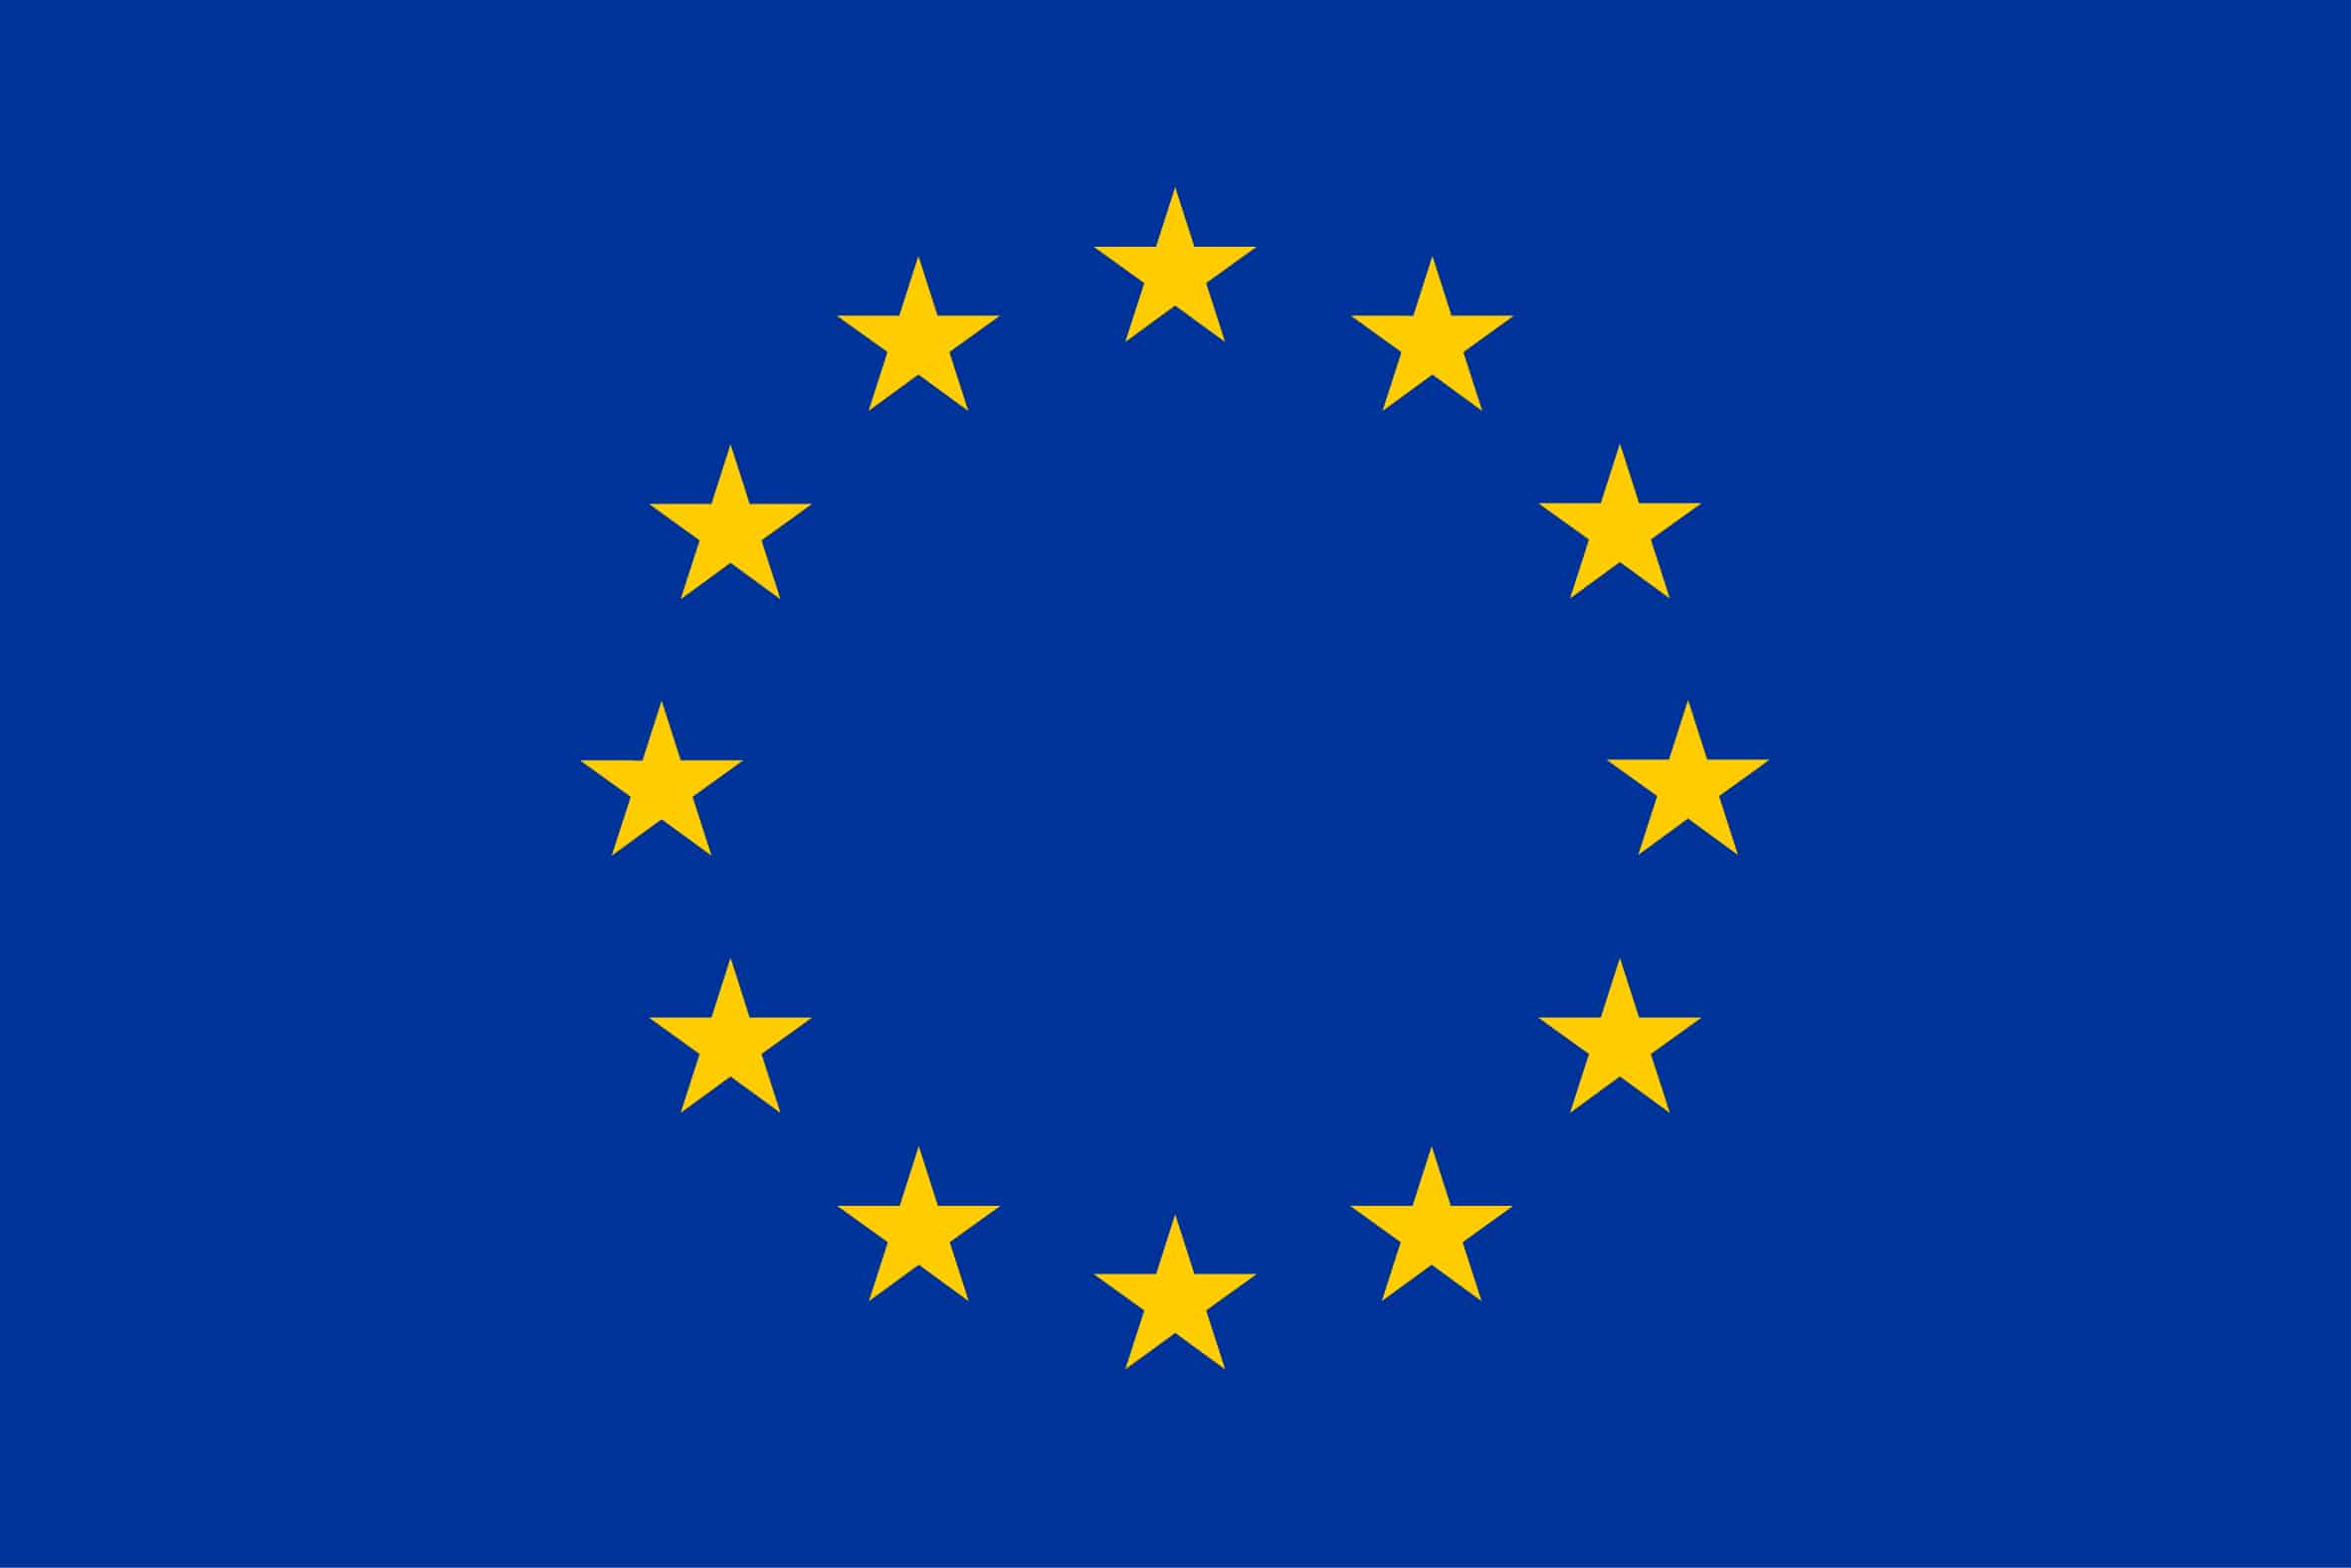 Carbon Waters received the funding of the European Union's Horizon 2020 programm